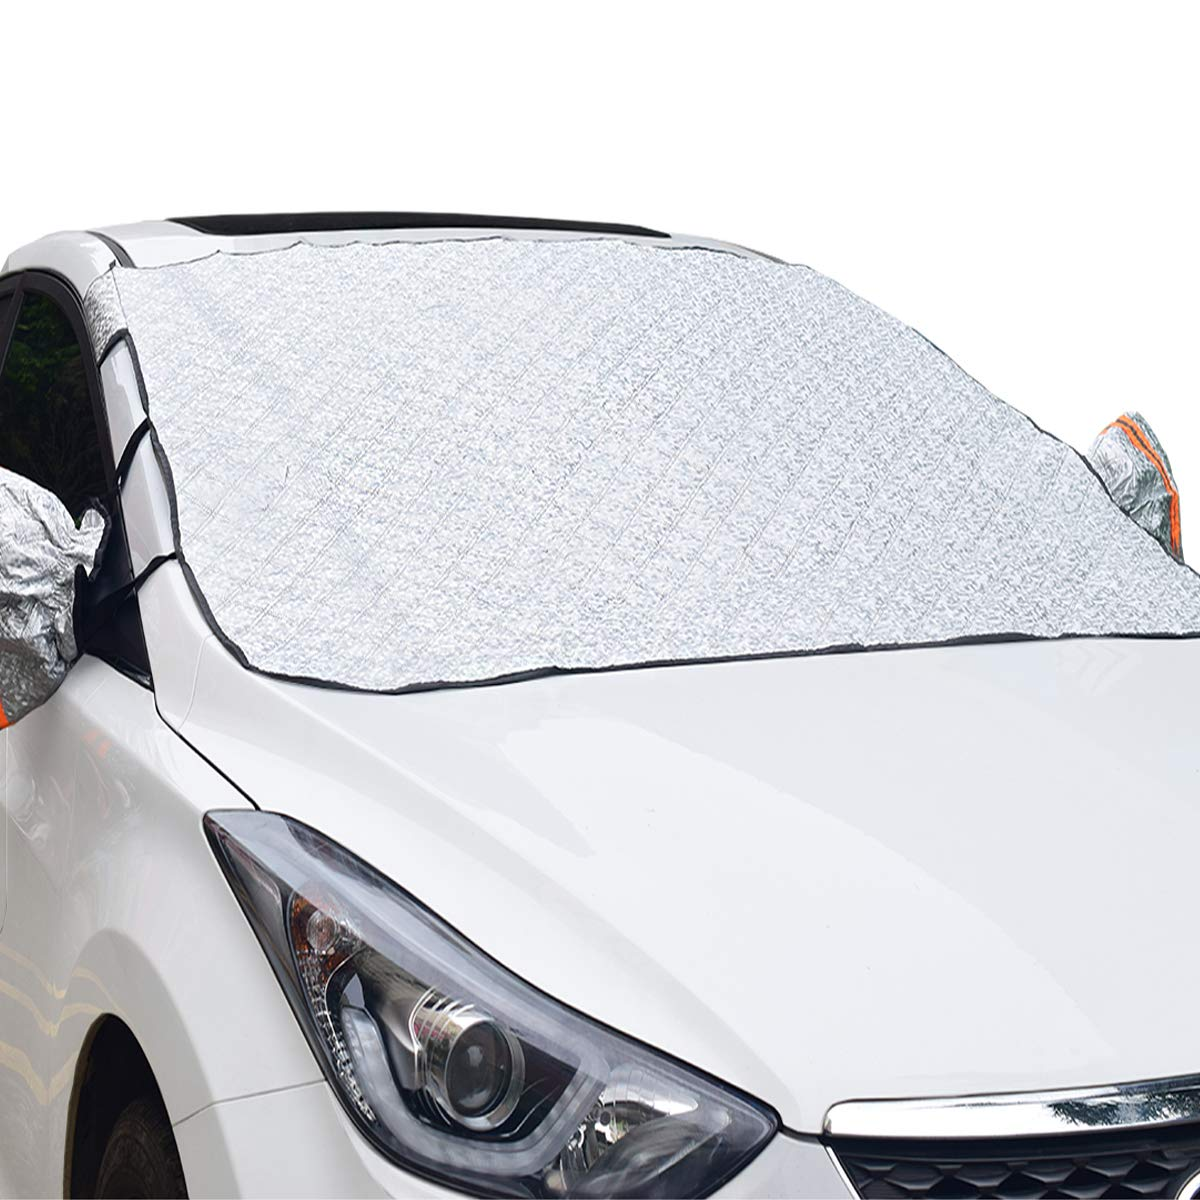 Car Windshield Snow Cover Magnetic with Mirror Cover Thickened Cotton Ice Frost Sunshade UV Protector Frostguard No Scratches Windshield Covers for Car, SUV, Truck, CRV FEENM